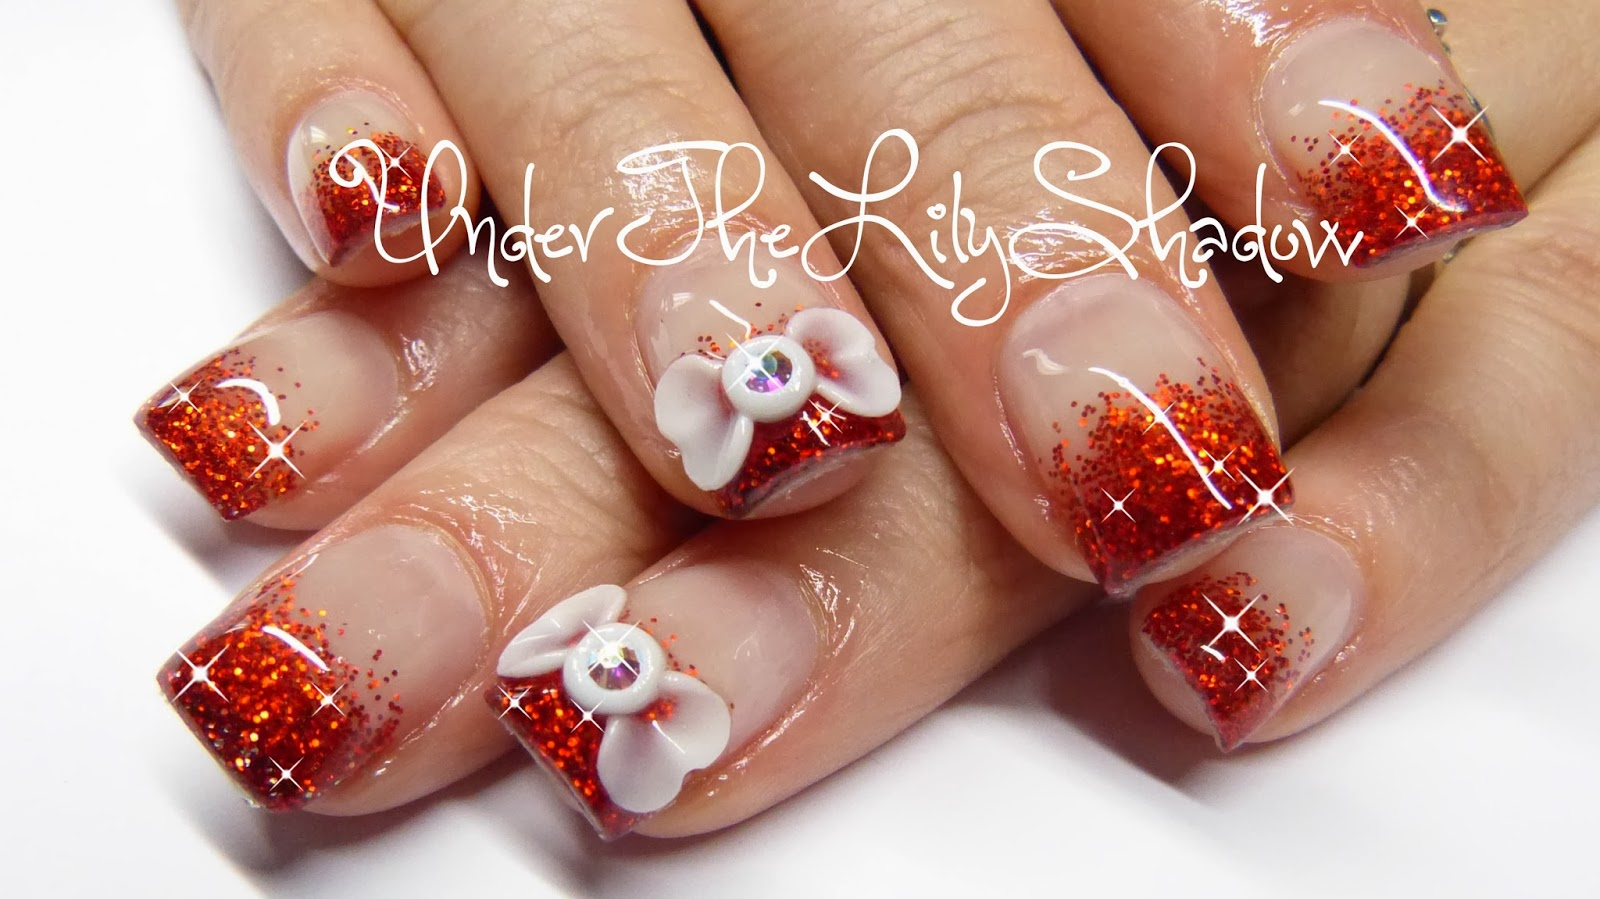 Underthelilyshadow how to acrylic nails 3d bow and red sparkles how to acrylic nails 3d bow and red sparkles prinsesfo Choice Image